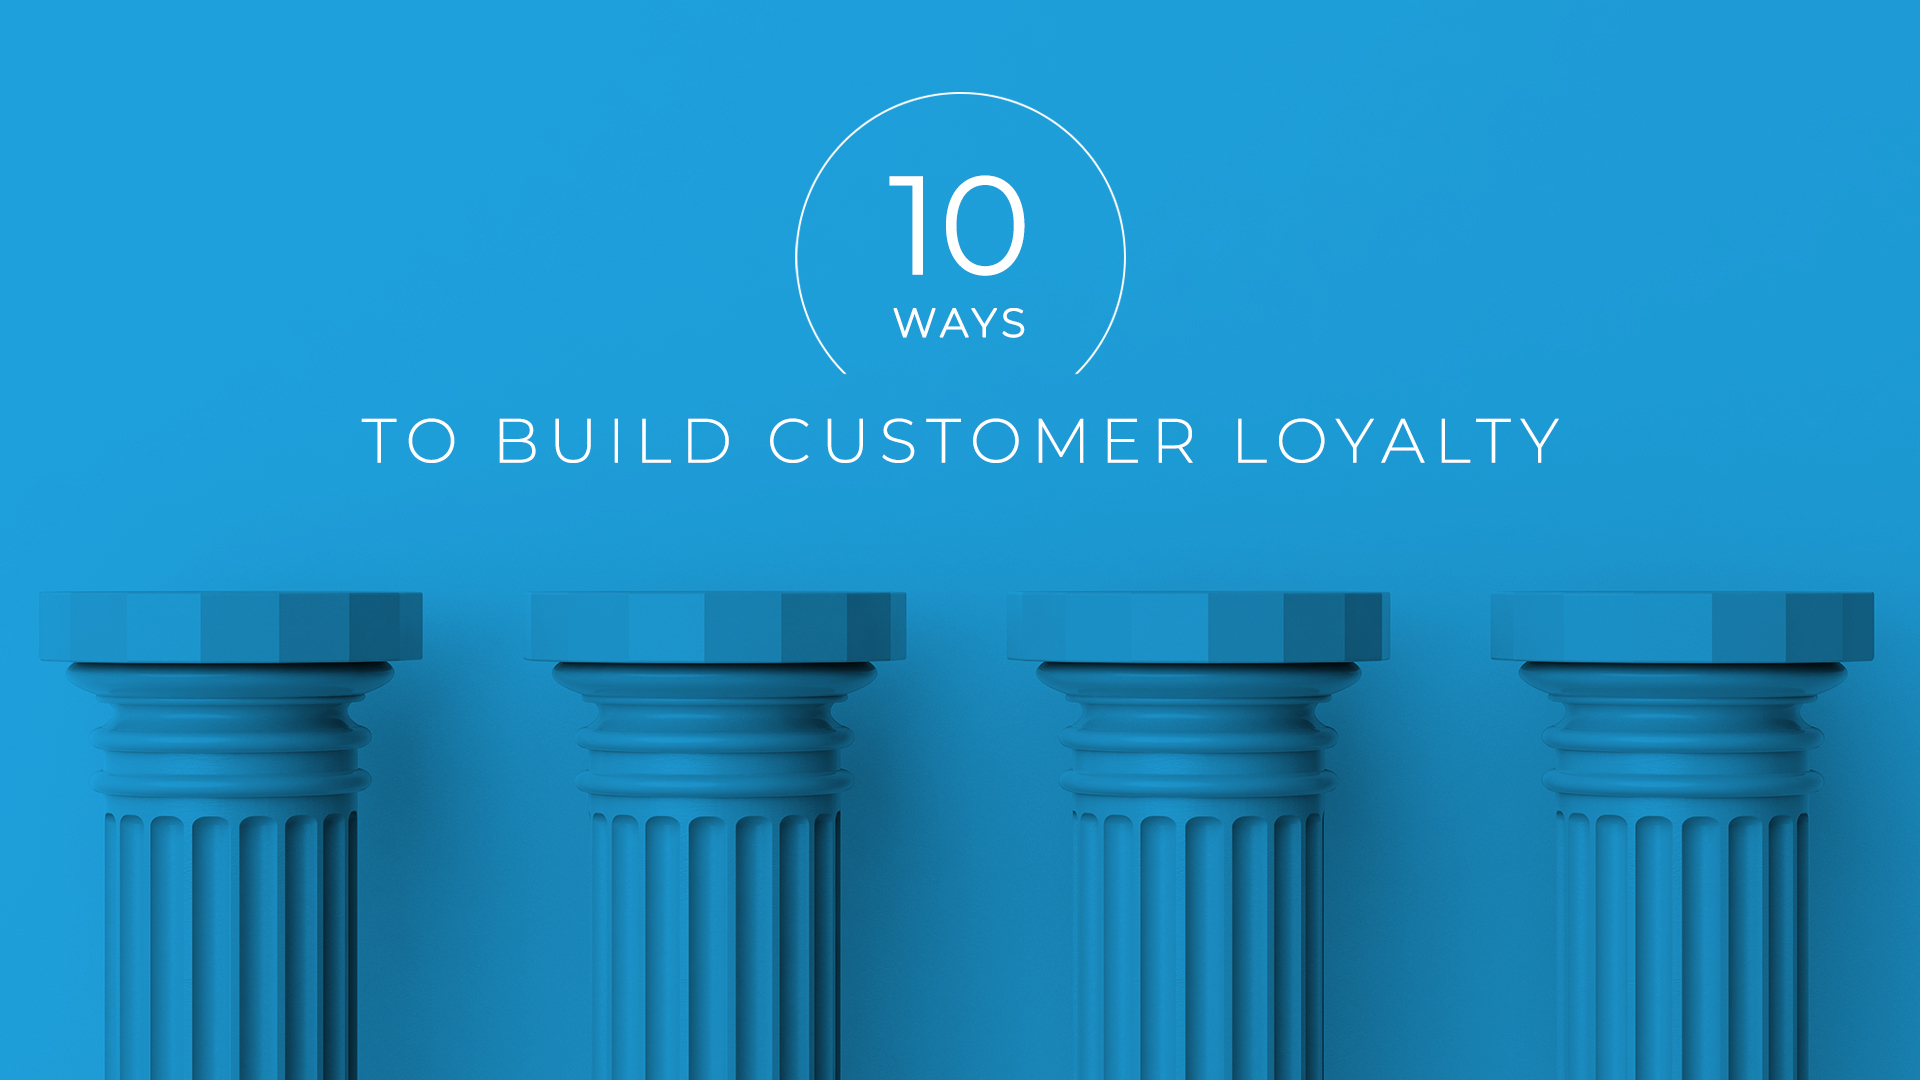 10 Ways to Build Customer Loyalty